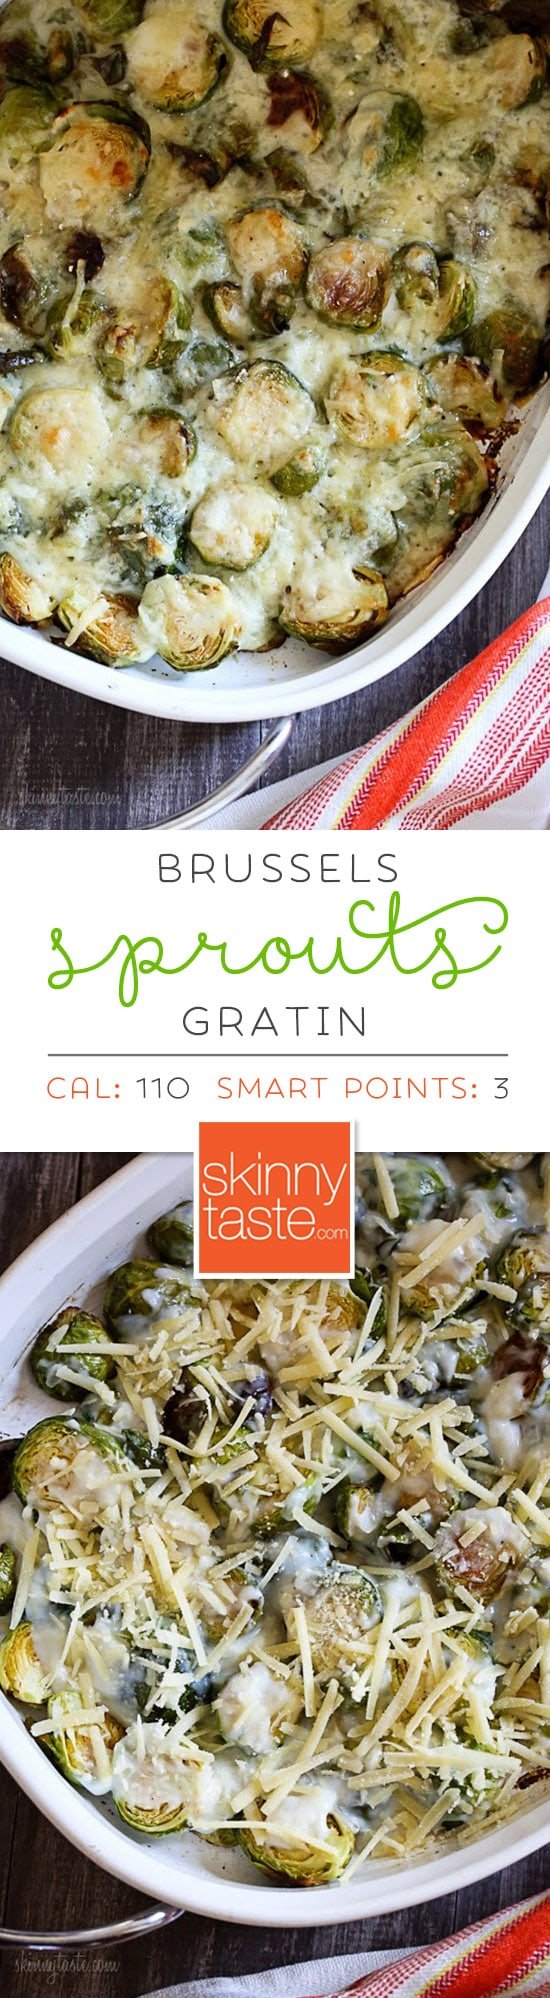 Brussels Sprouts Gratin are the perfect Holiday side dish! The brussels sprouts are roasted until crisp, then topped with a light cheese sauce made with Gruyere and parmesan, and baked until brown and bubbling. If you are as obsessed with brussels sprouts as I am, you'll love these! #bestbrusselssprotesrecipe #brusselssproutsgratin #brusselssprouts #thanksgivingsidedish #brusselssprouts